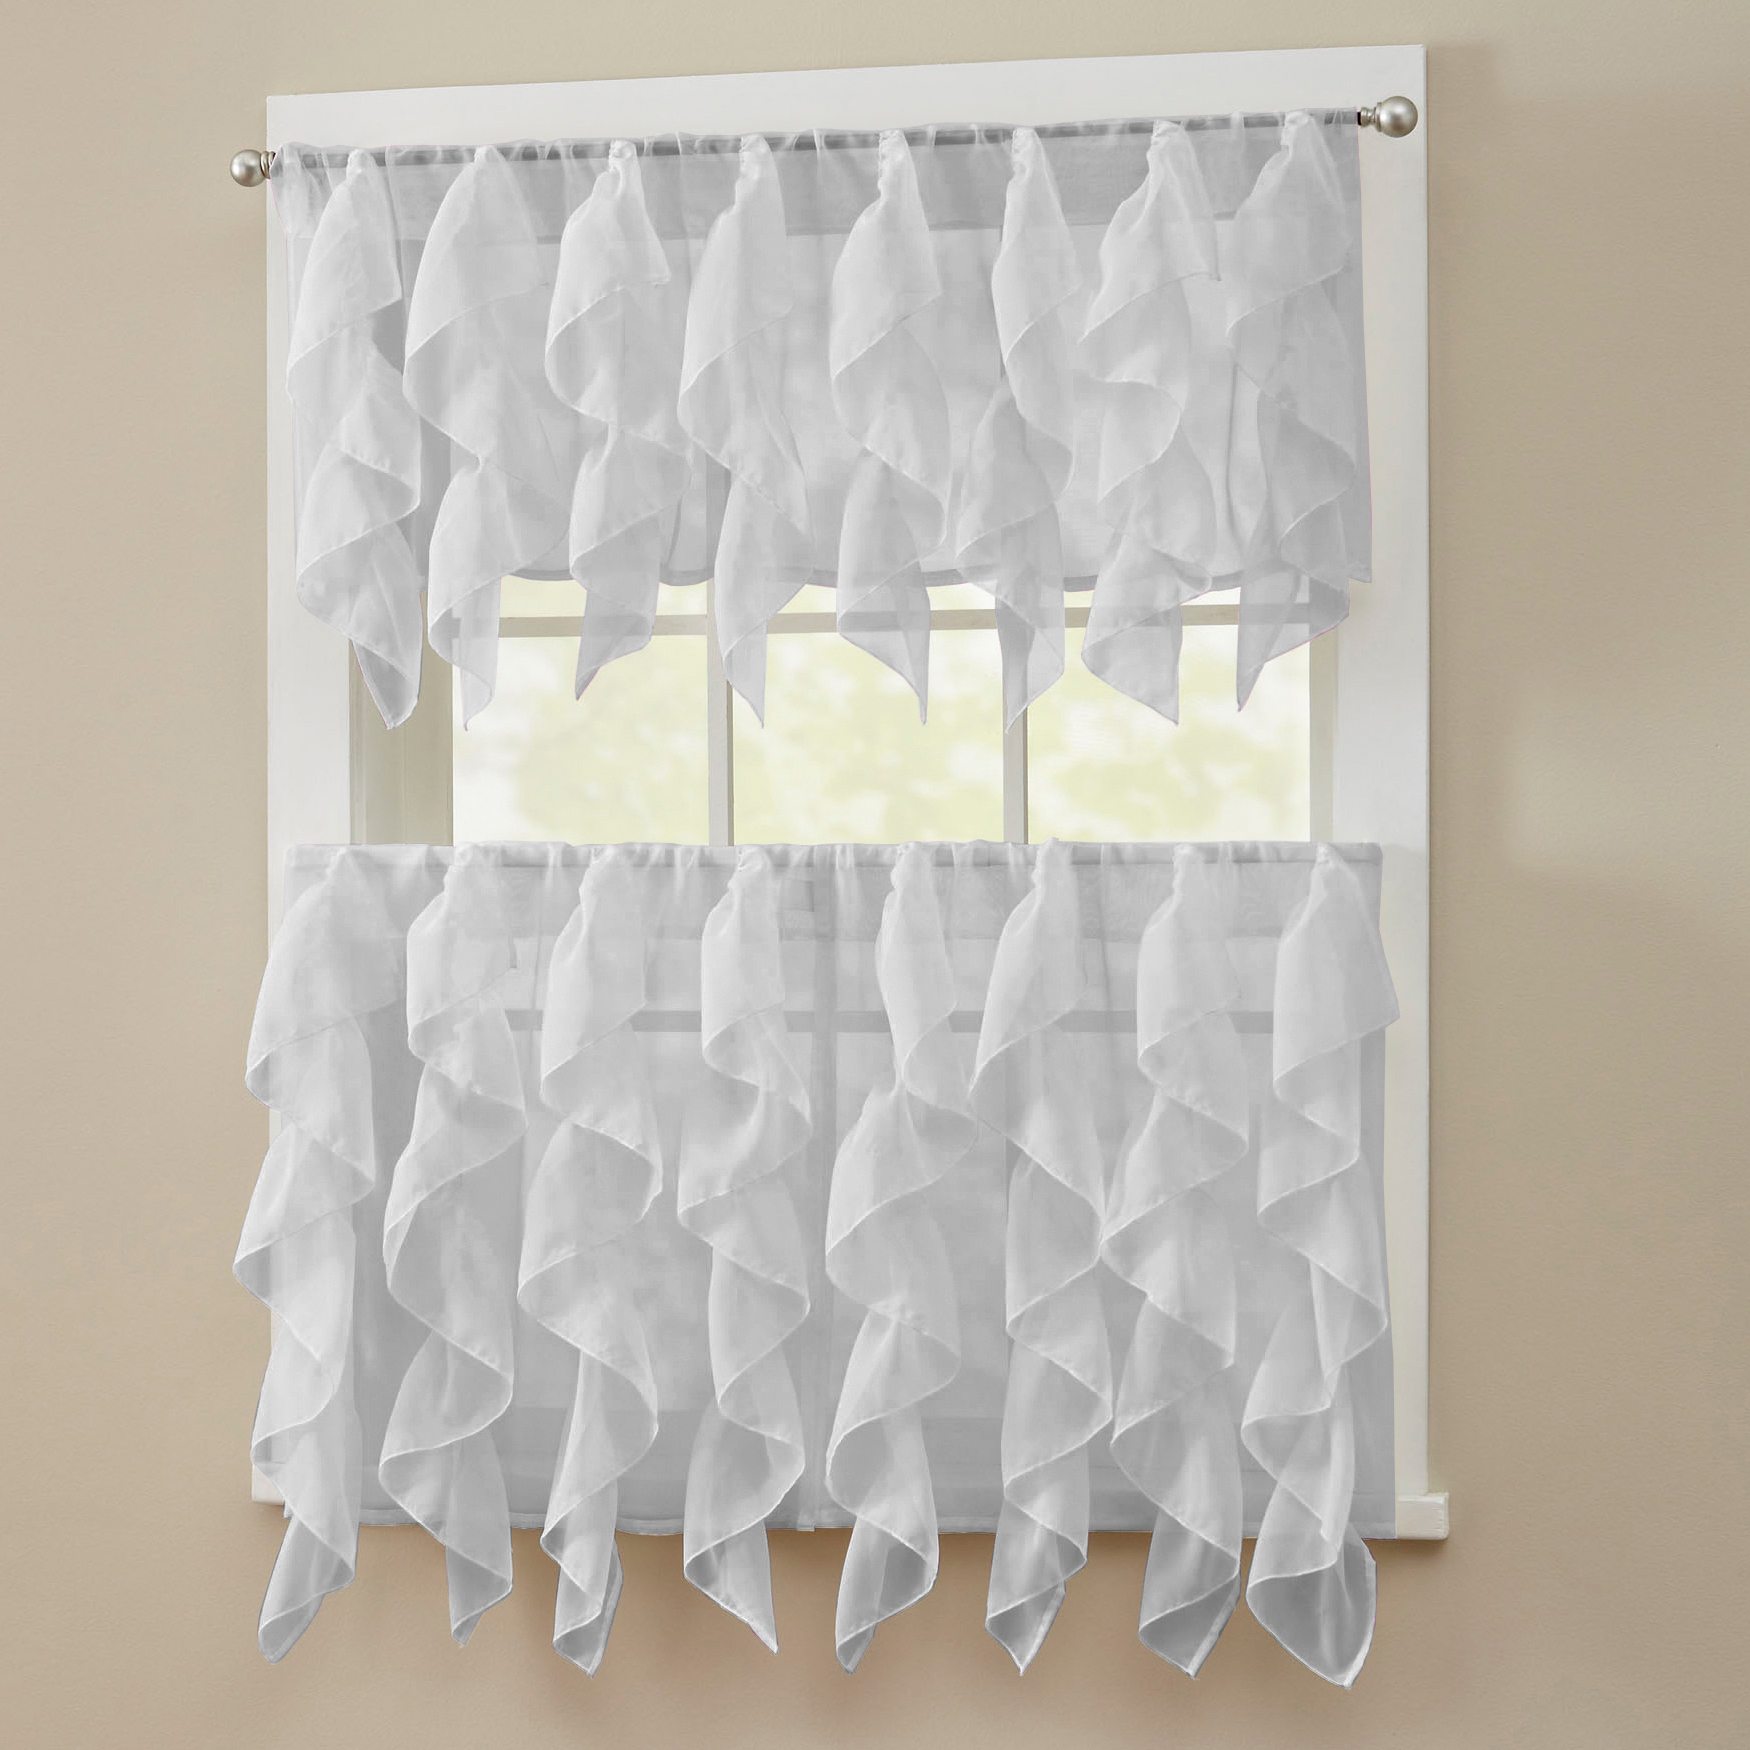 Most Current Details About Sheer Voile Vertical Ruffle Window Kitchen Curtain Tiers Or  Valance Silver Inside Vertical Ruffled Waterfall Valances And Curtain Tiers (Gallery 7 of 20)